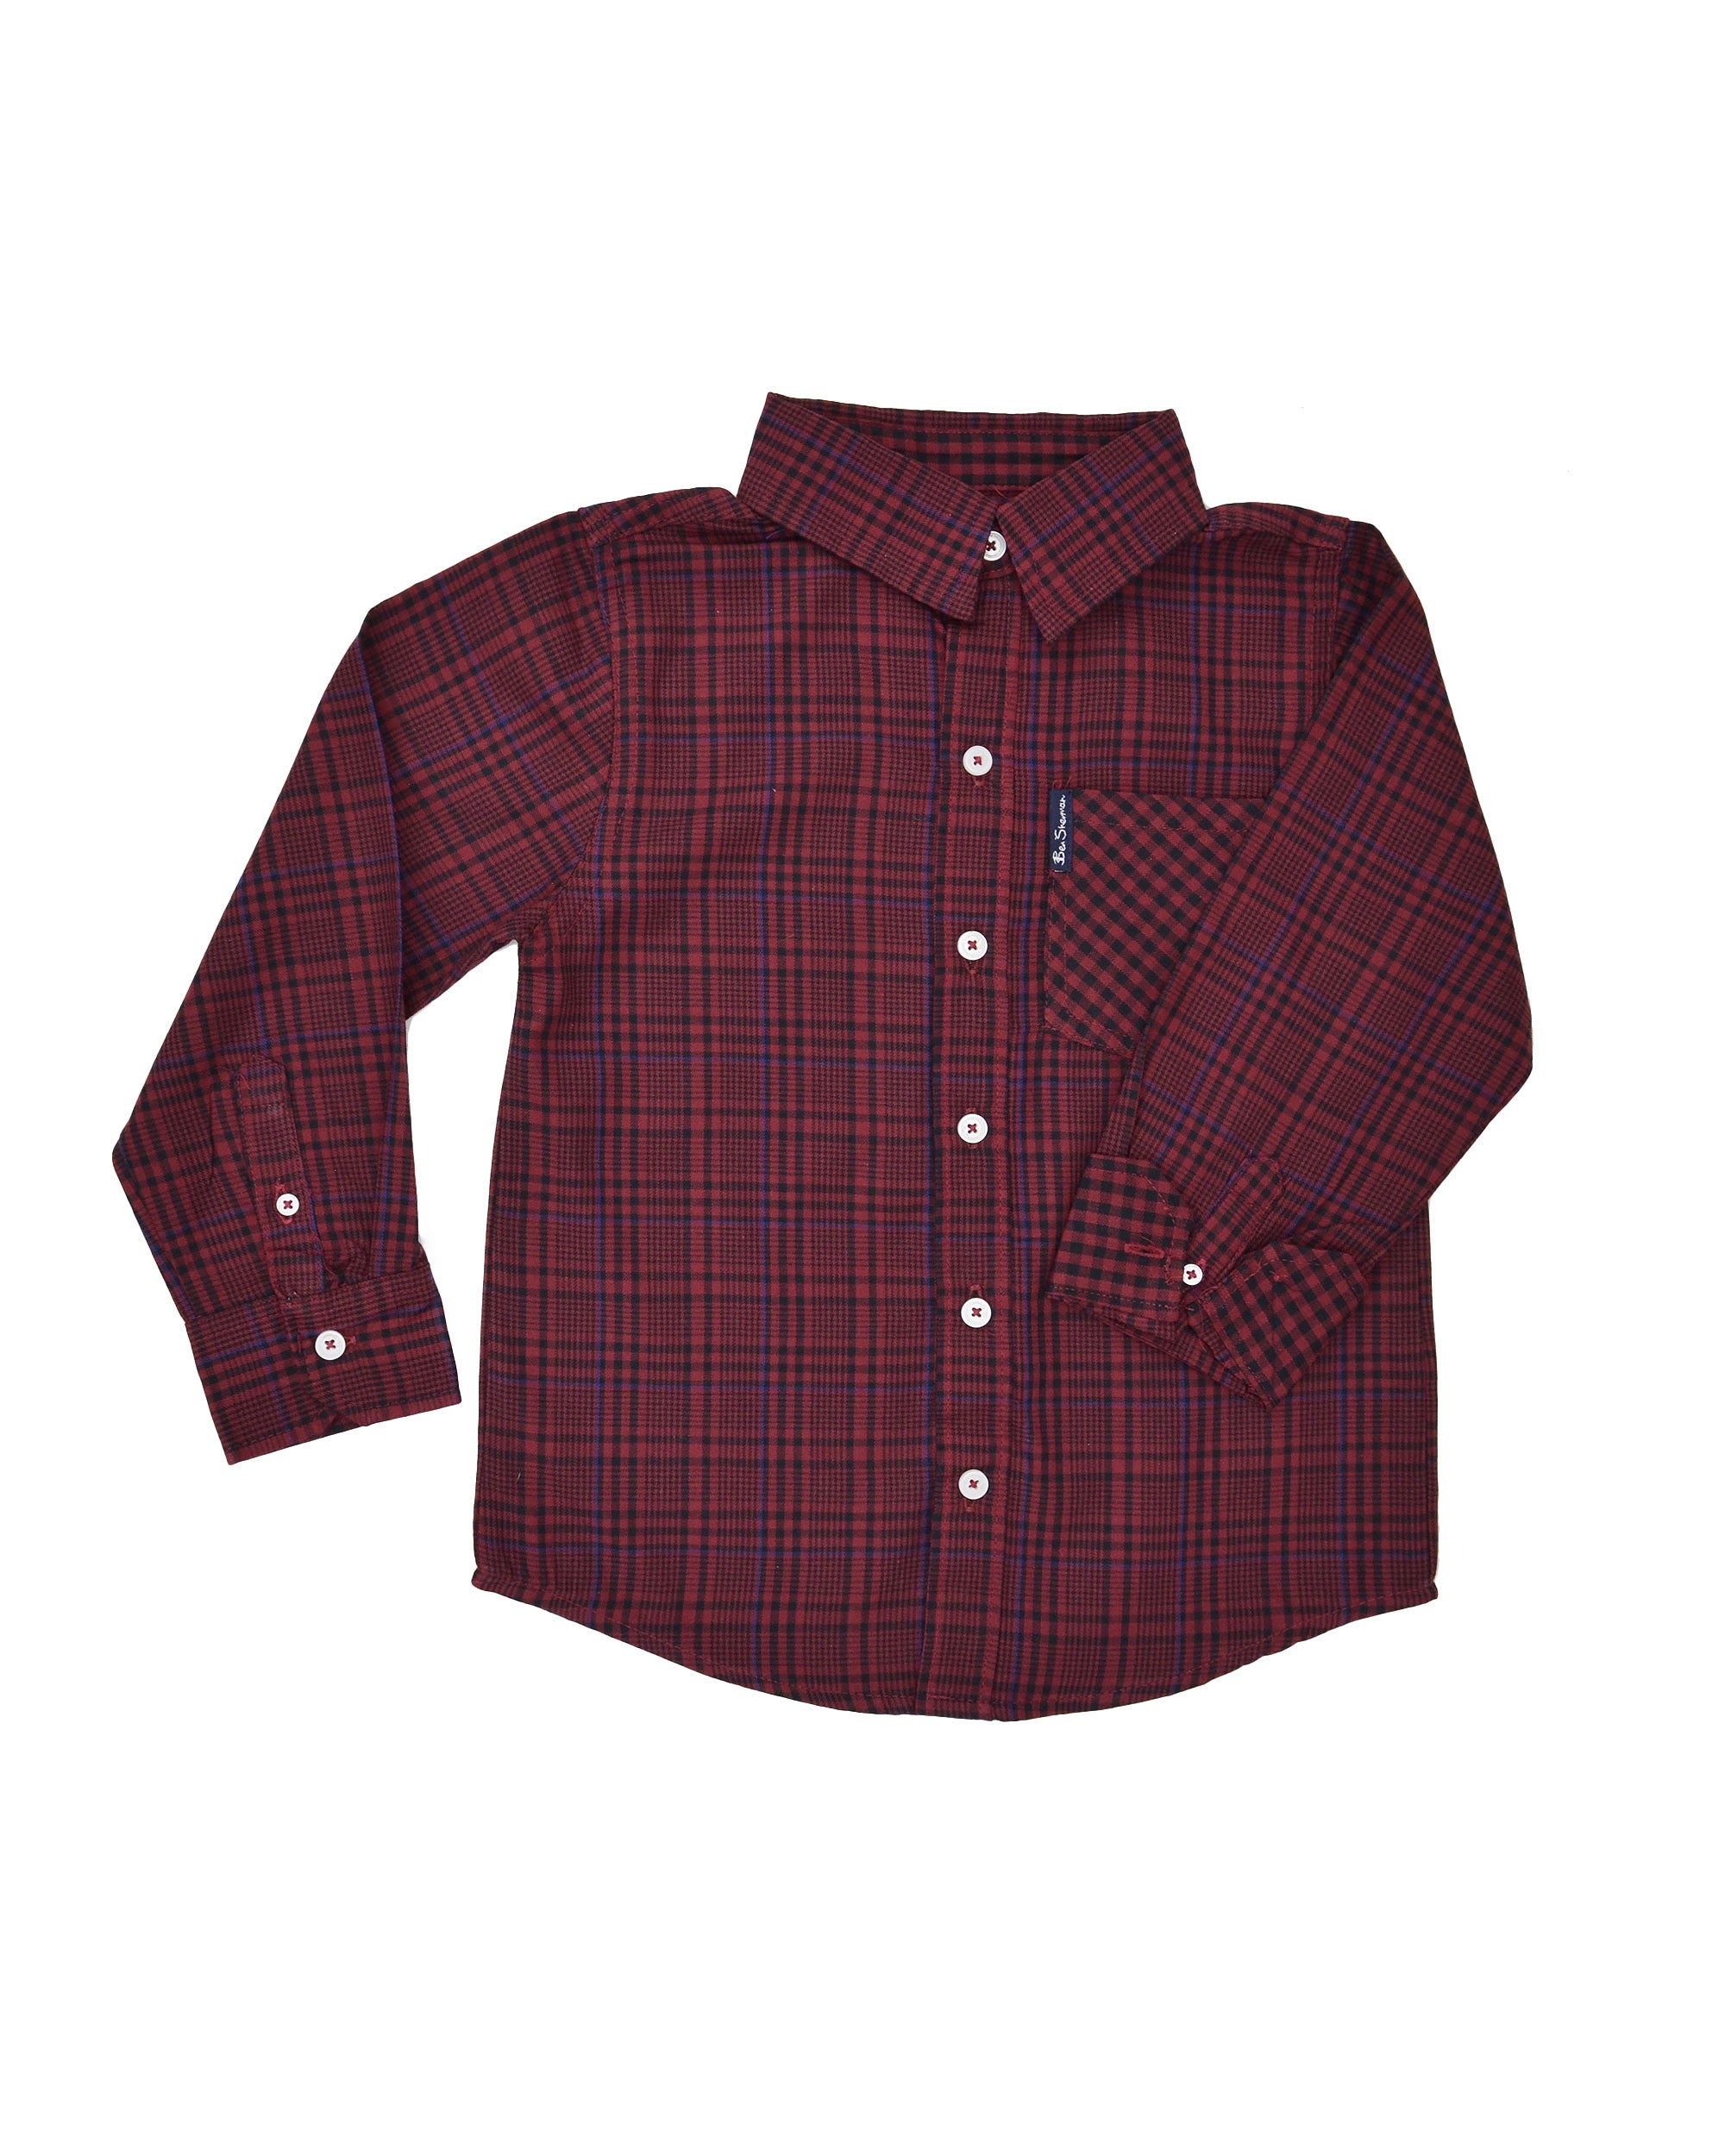 Boys' Red & Black Plaid with Blue Yarn Dyed Shirt (Sizes 4-7)